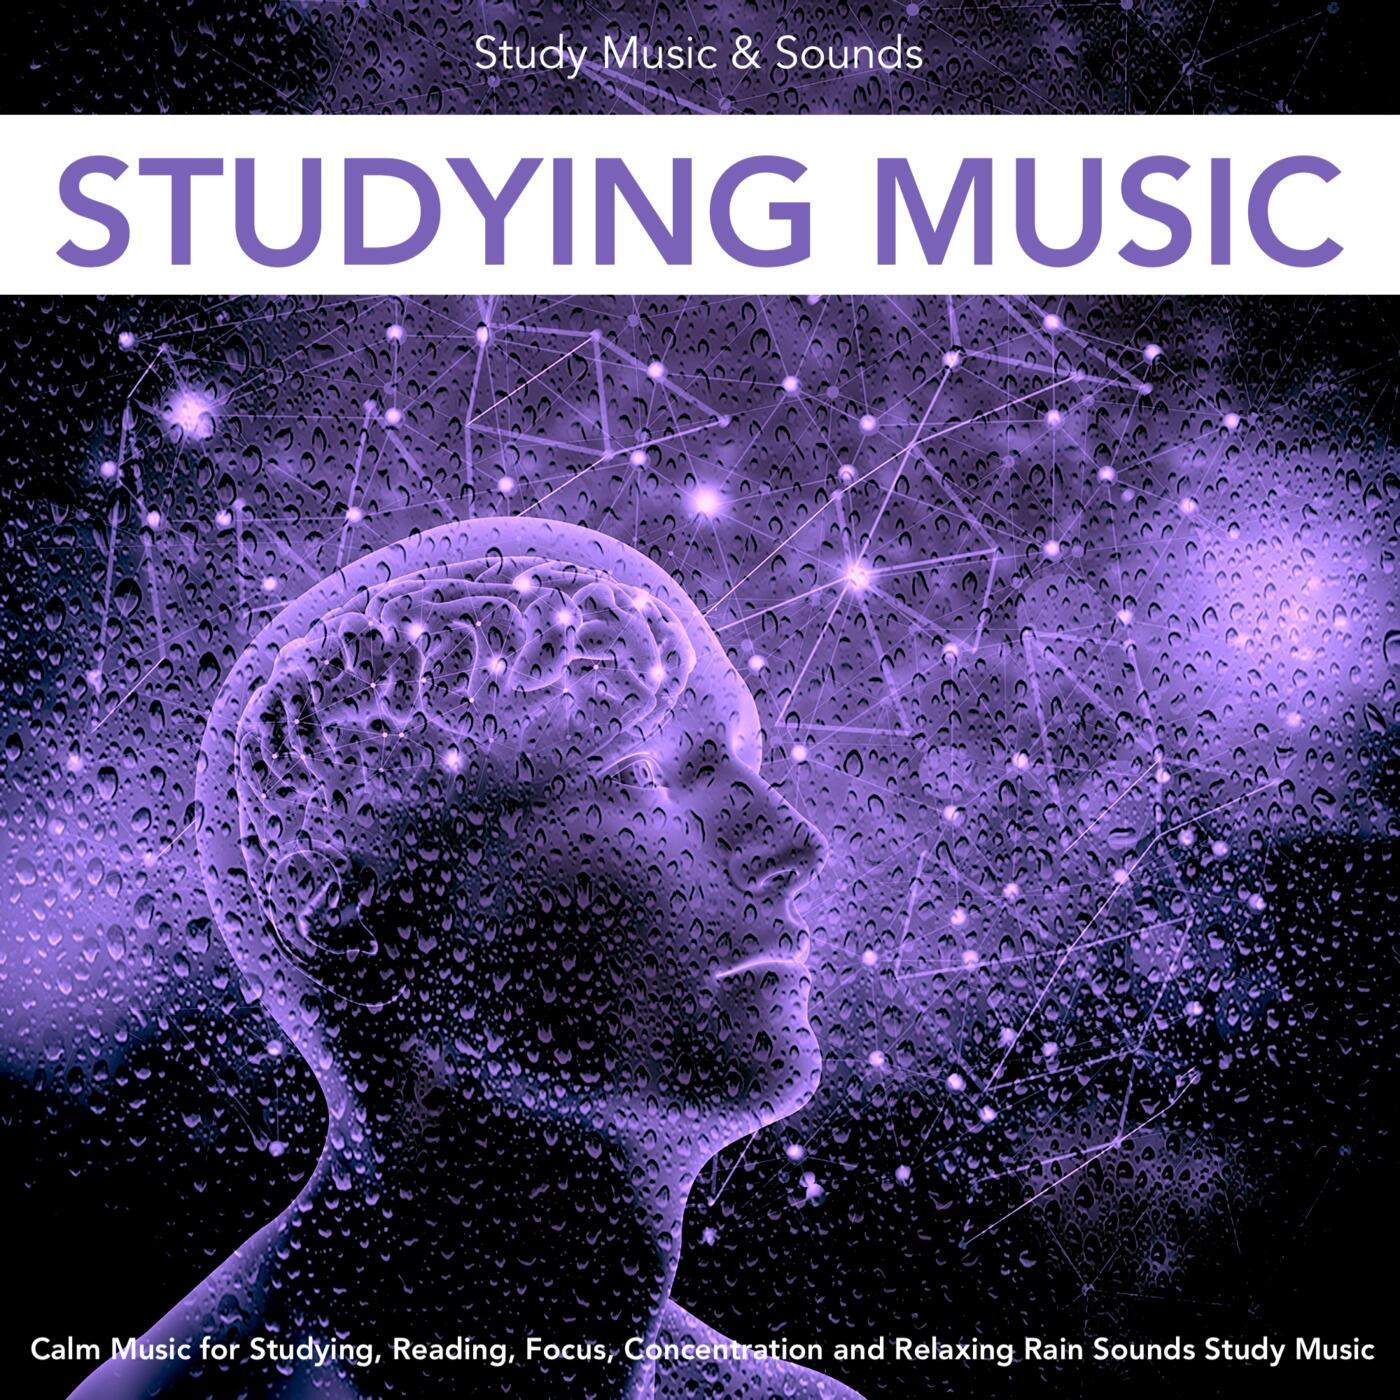 Study Music & Sounds Radio: Listen to Free Music & Get The